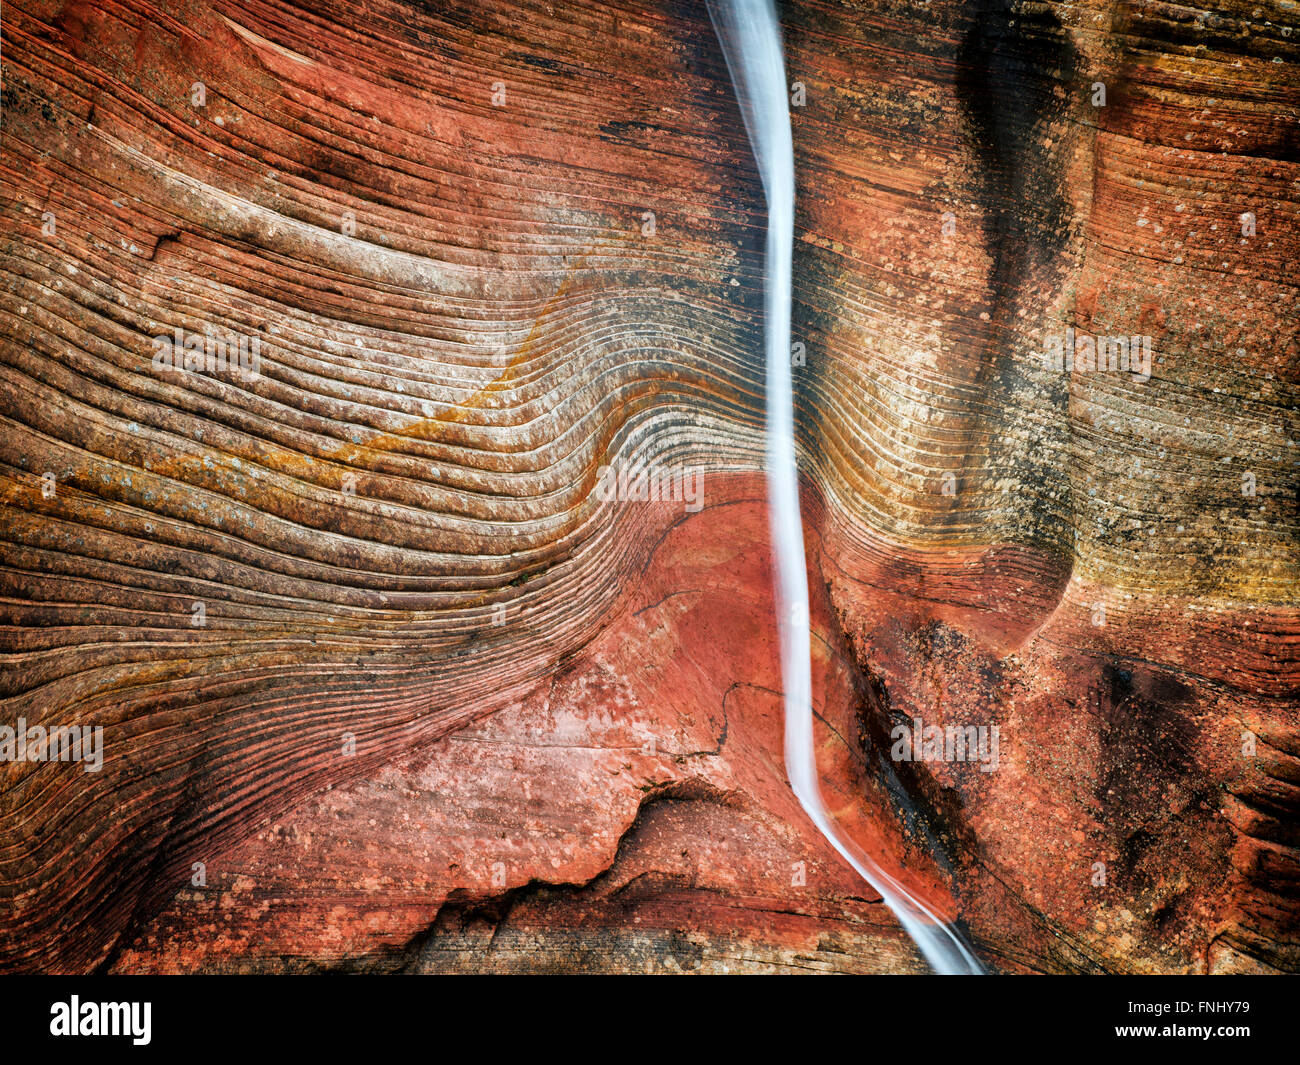 A stream lasting only hours after a rainstorm in Zion National Park, Utah - Stock Image